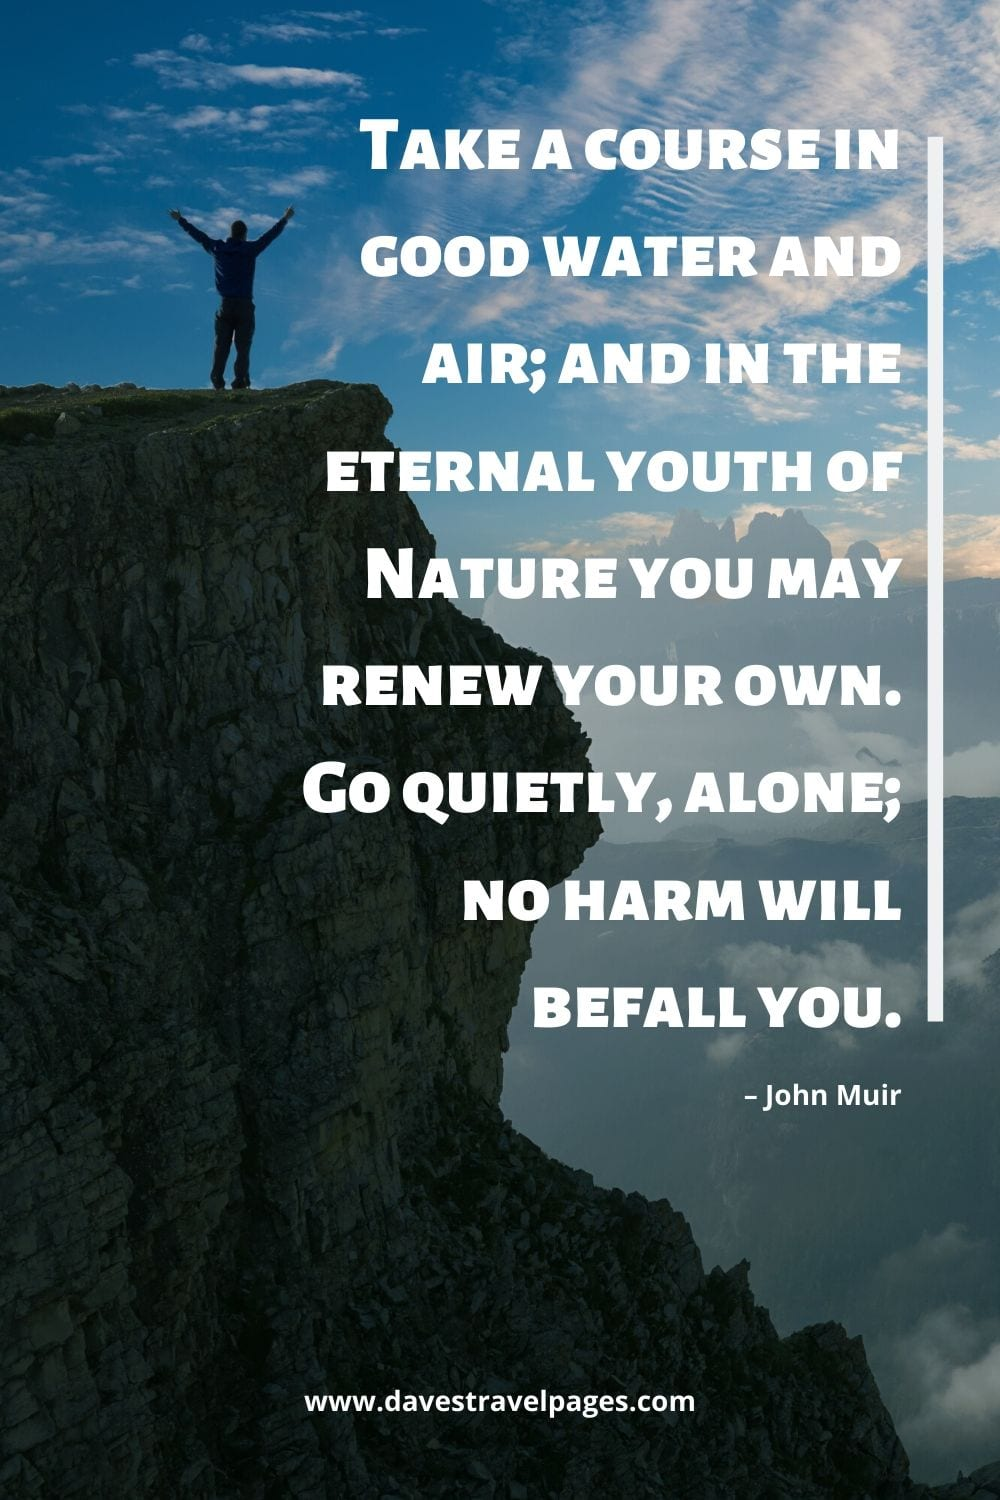 """Quotes by John Muir: """"Take a course in good water and air; and in the eternal youth of Nature you may renew your own. Go quietly, alone; no harm will befall you."""""""